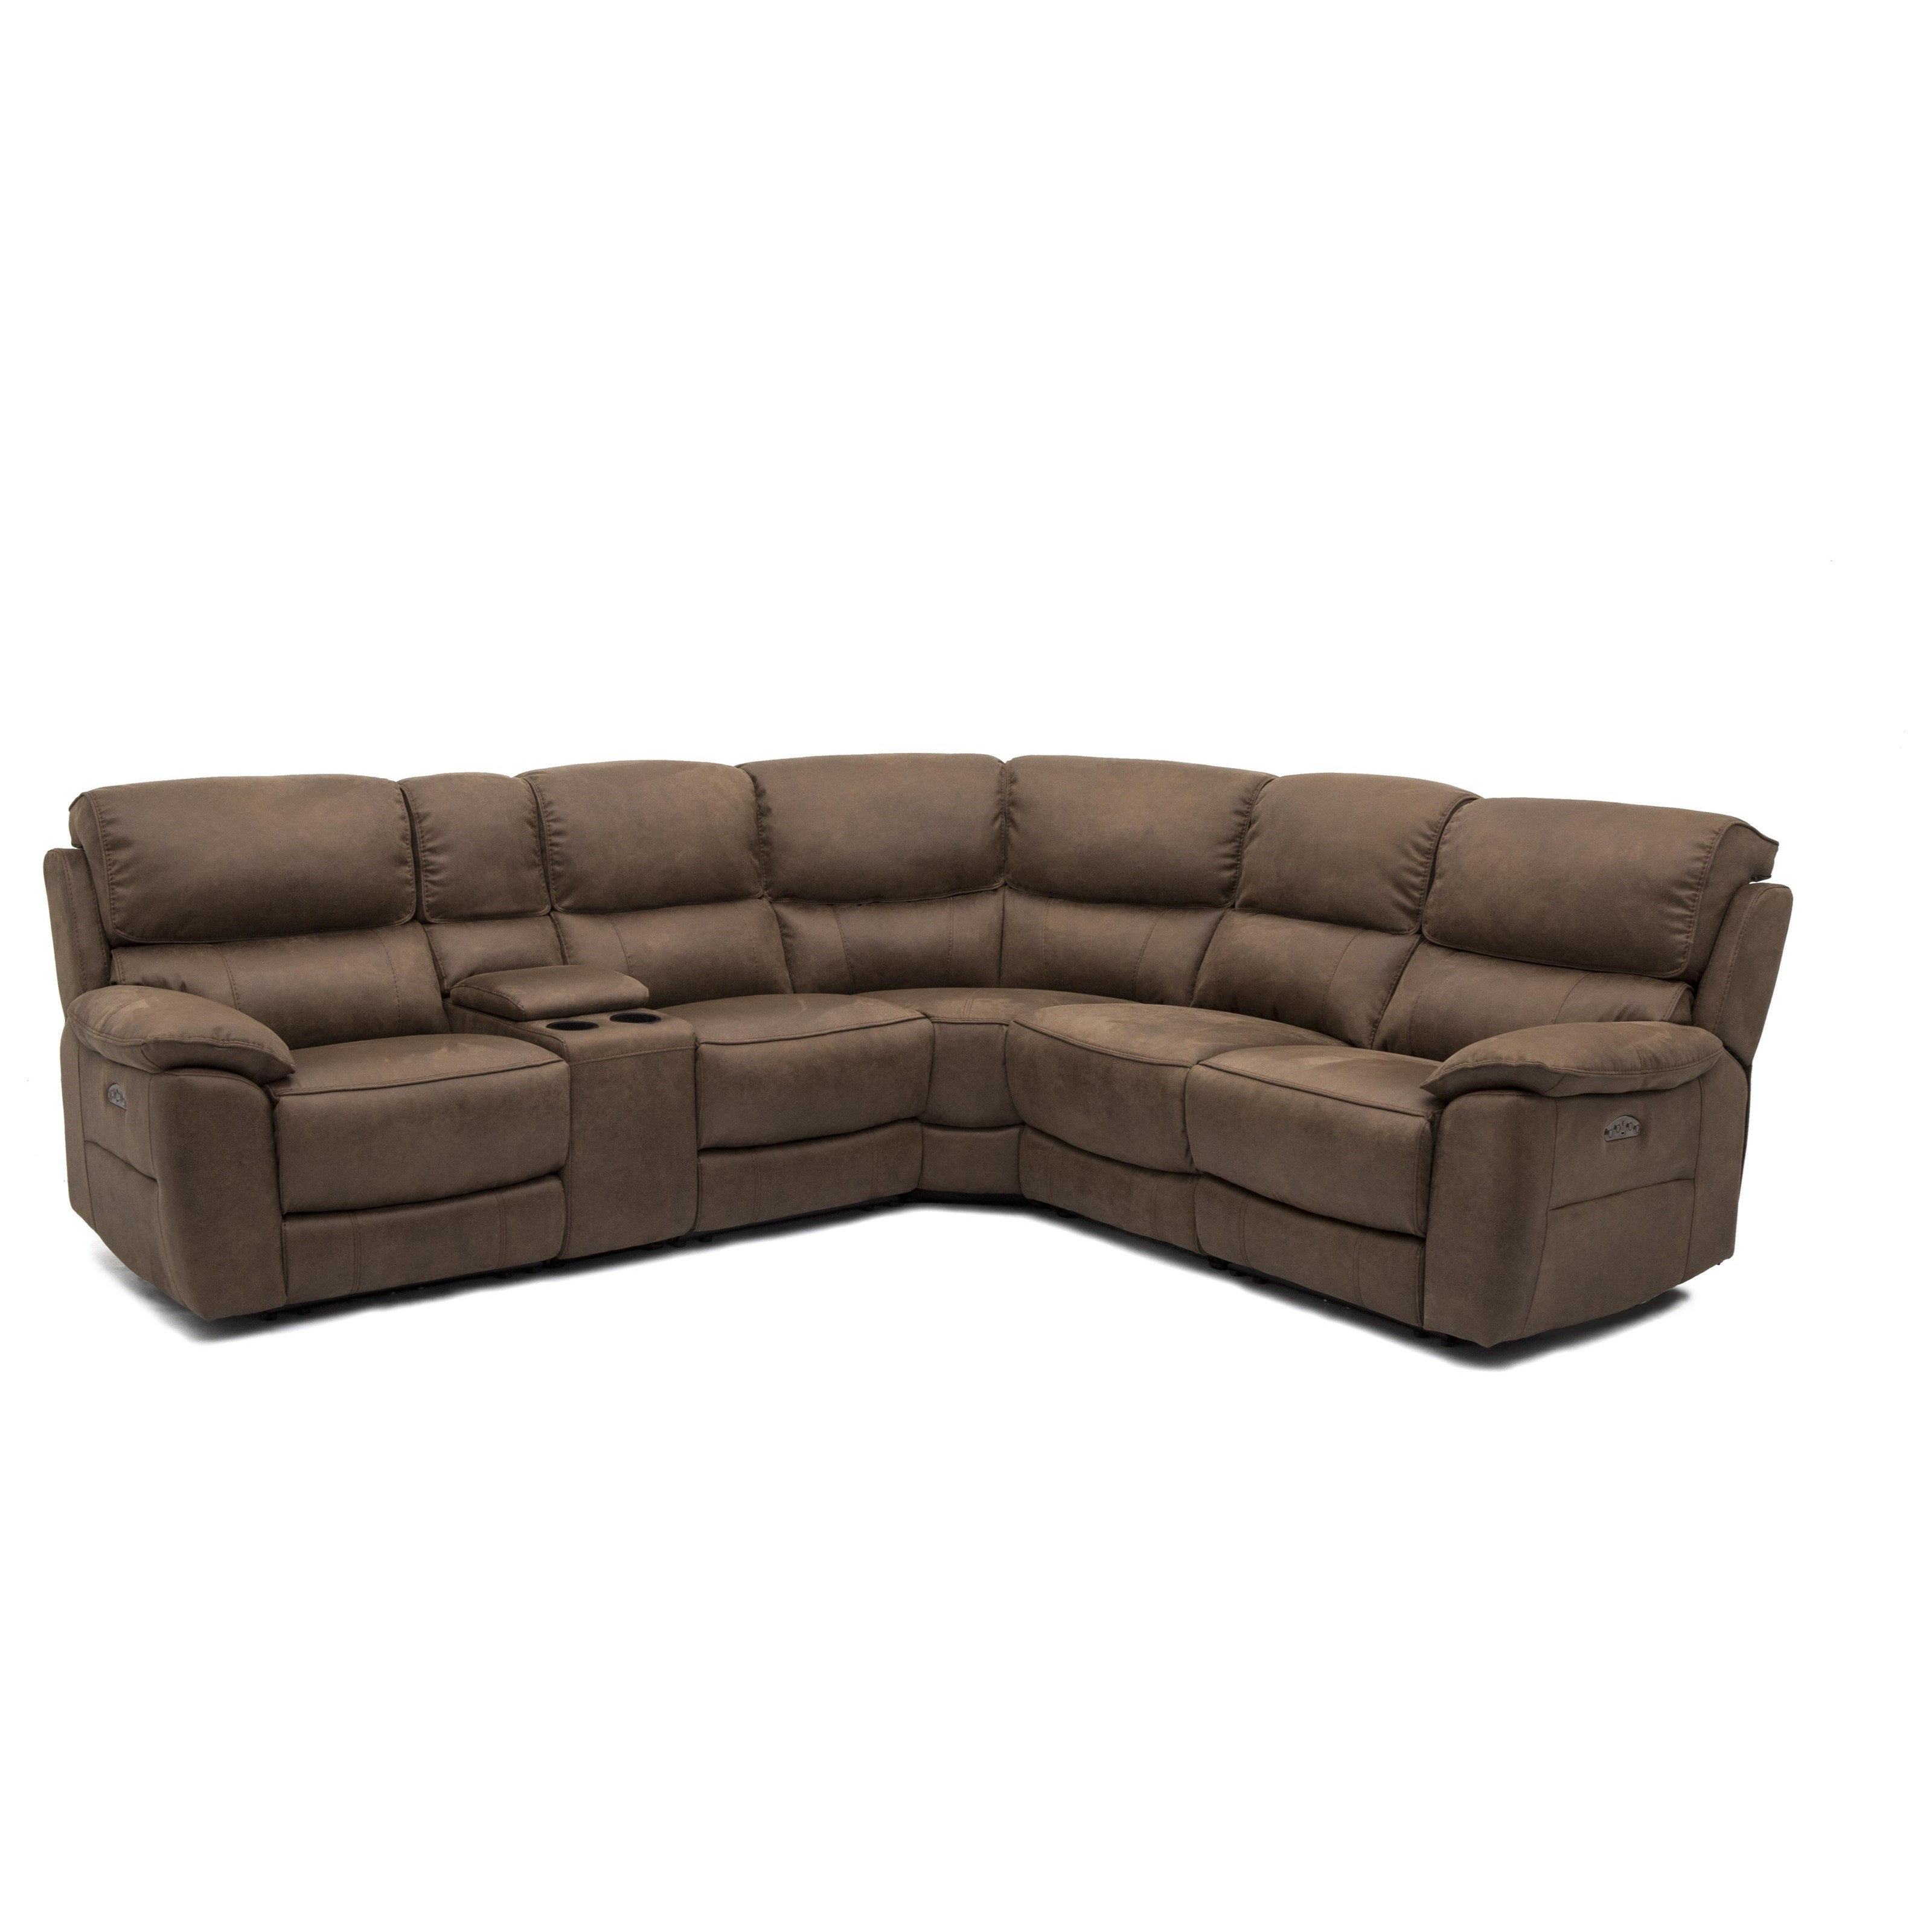 11472 Power Reclining Sectional by HTL at Wilson's Furniture